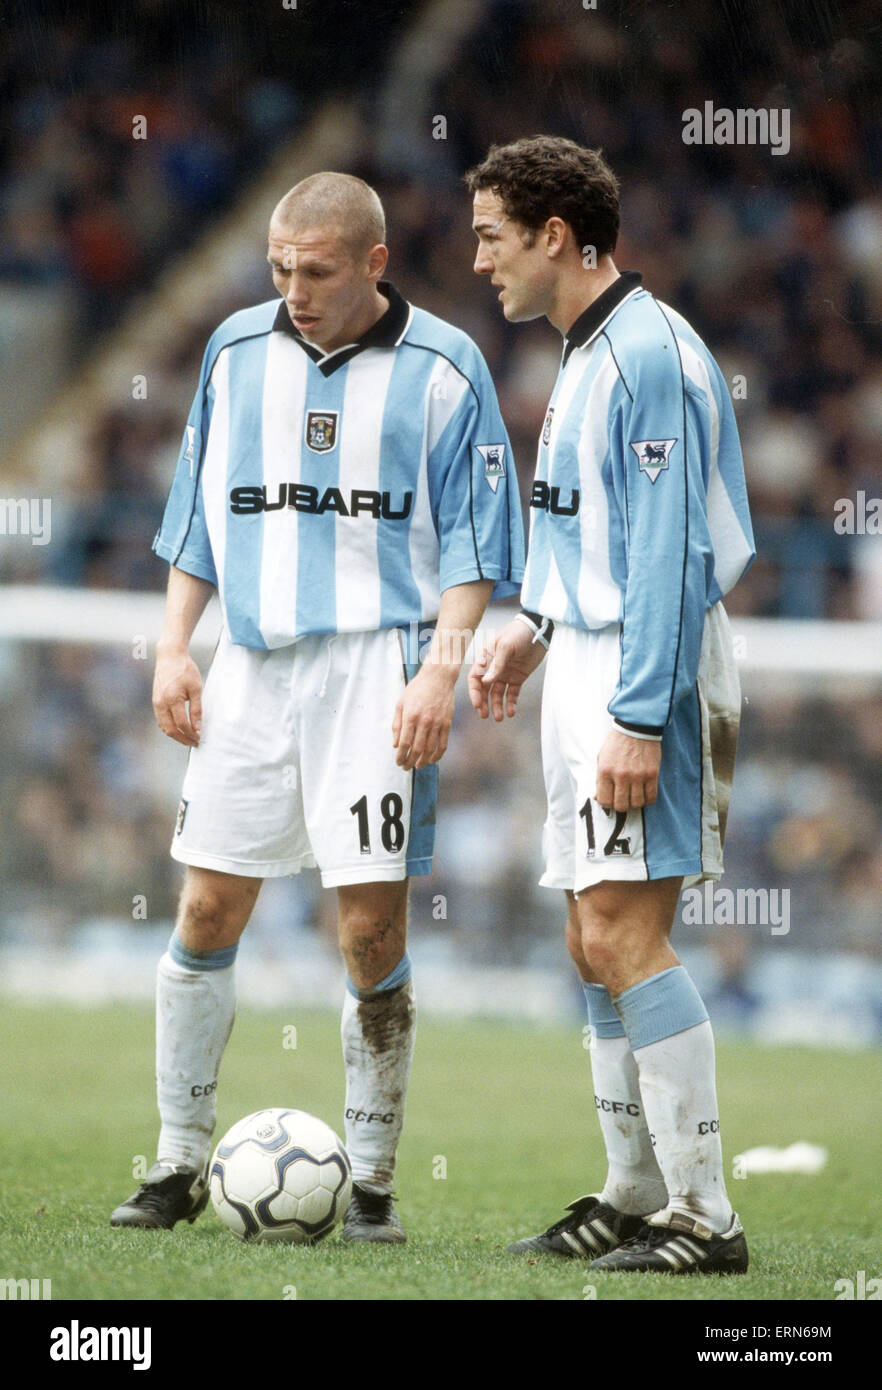 Craig Bellamy and Paul Telfer confirm over free kick, Coventry City Football Player, Circa 2001. - Stock Image